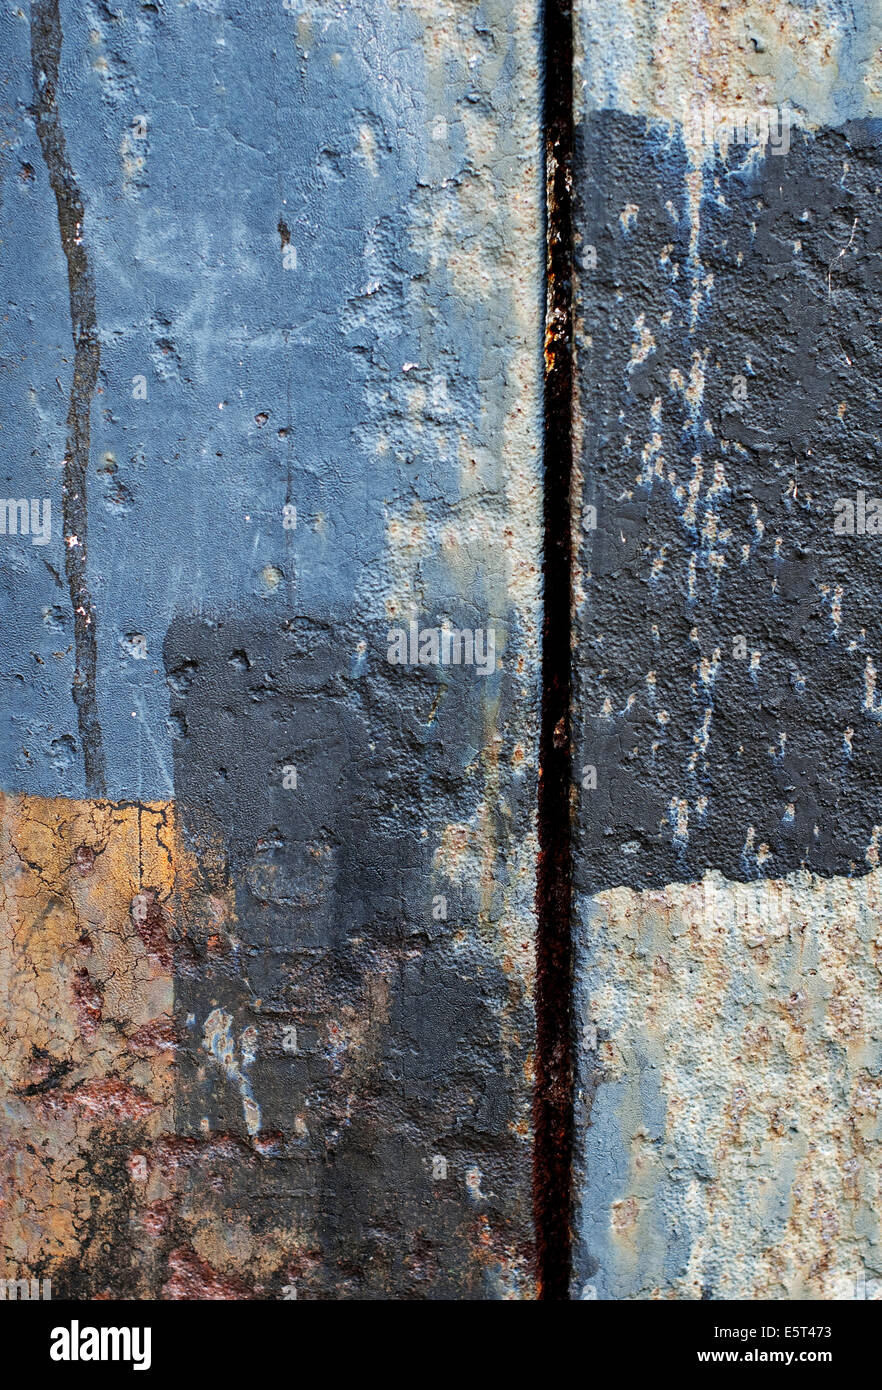 close up graphic abstract image of a rusty metal girder - Stock Image